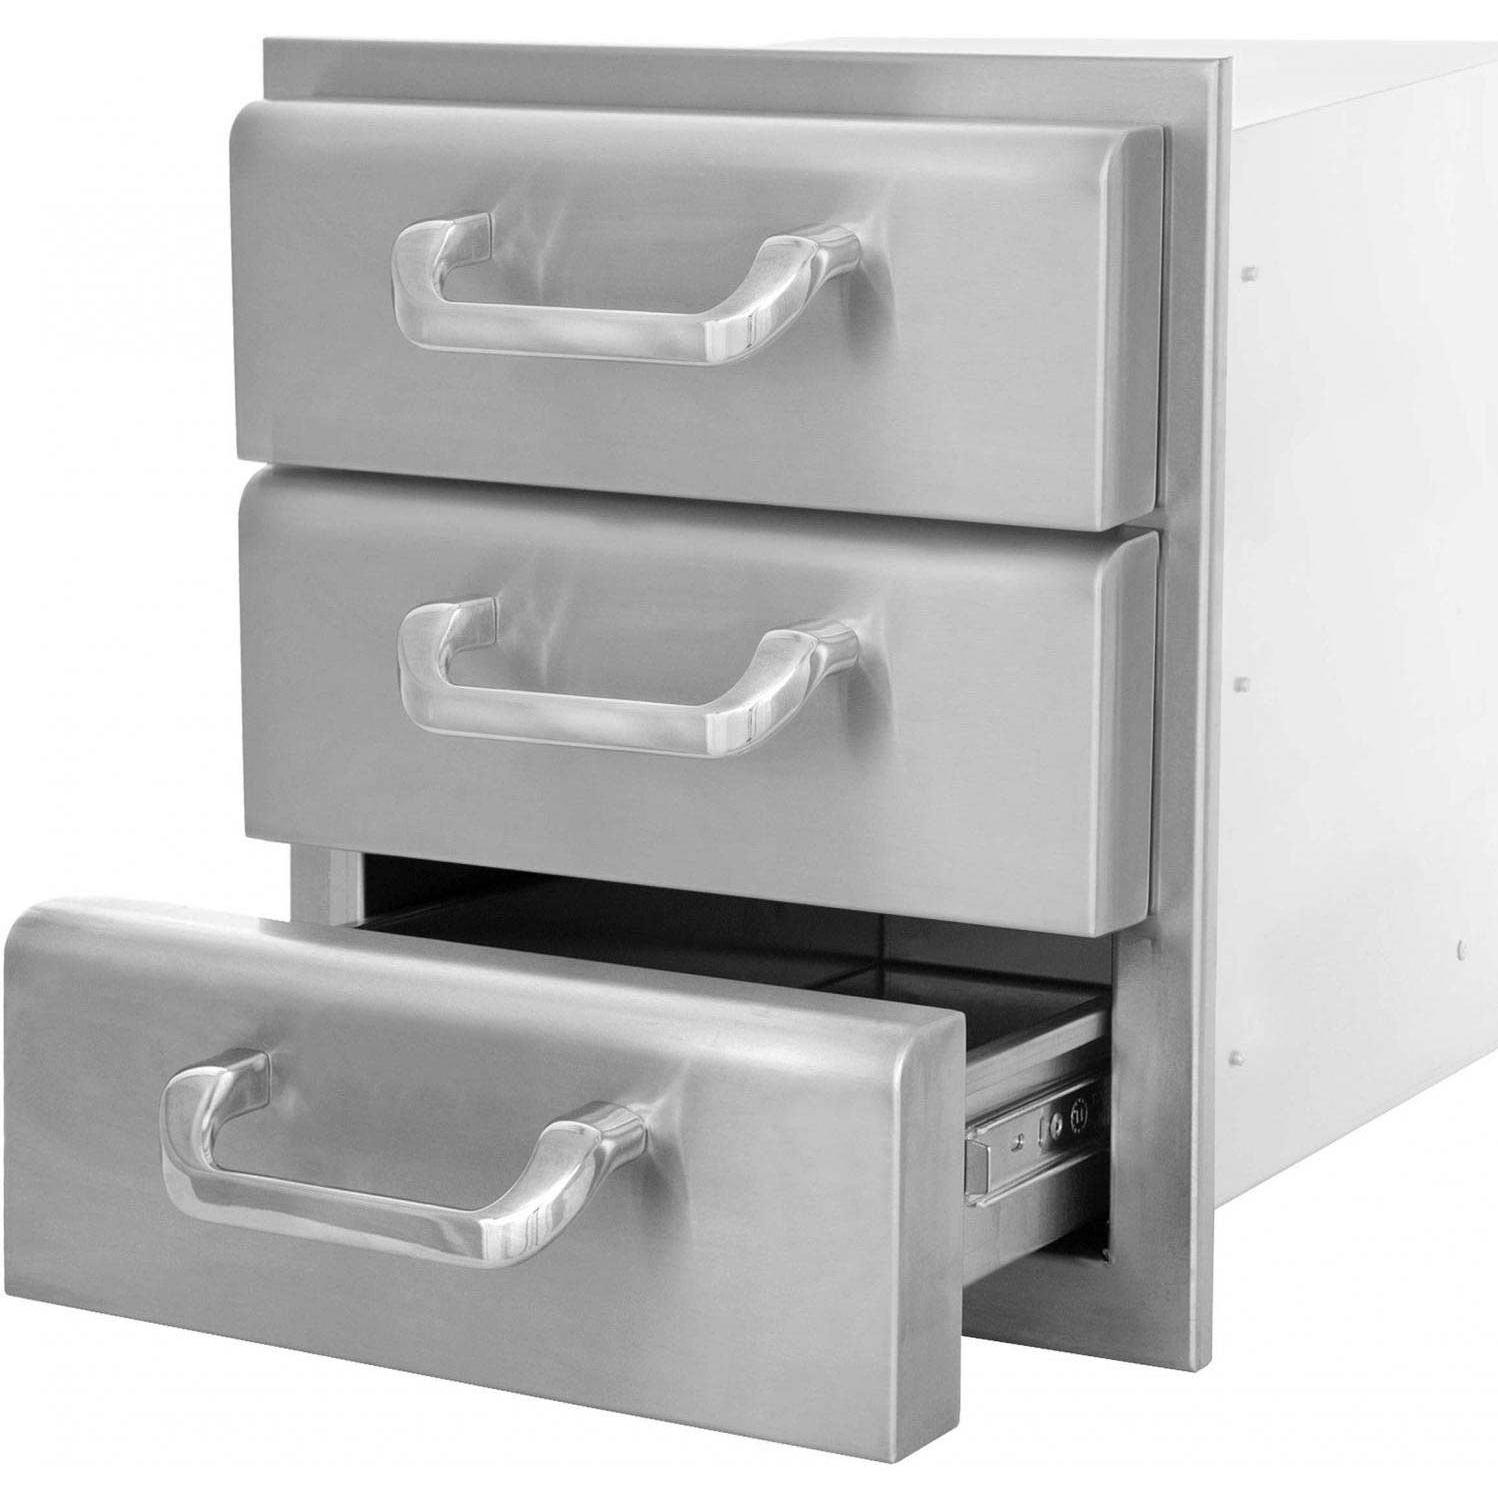 Picture of BBQGuys.com Kingston Raised Series 14 Inch Stainless Steel Triple Access Drawer